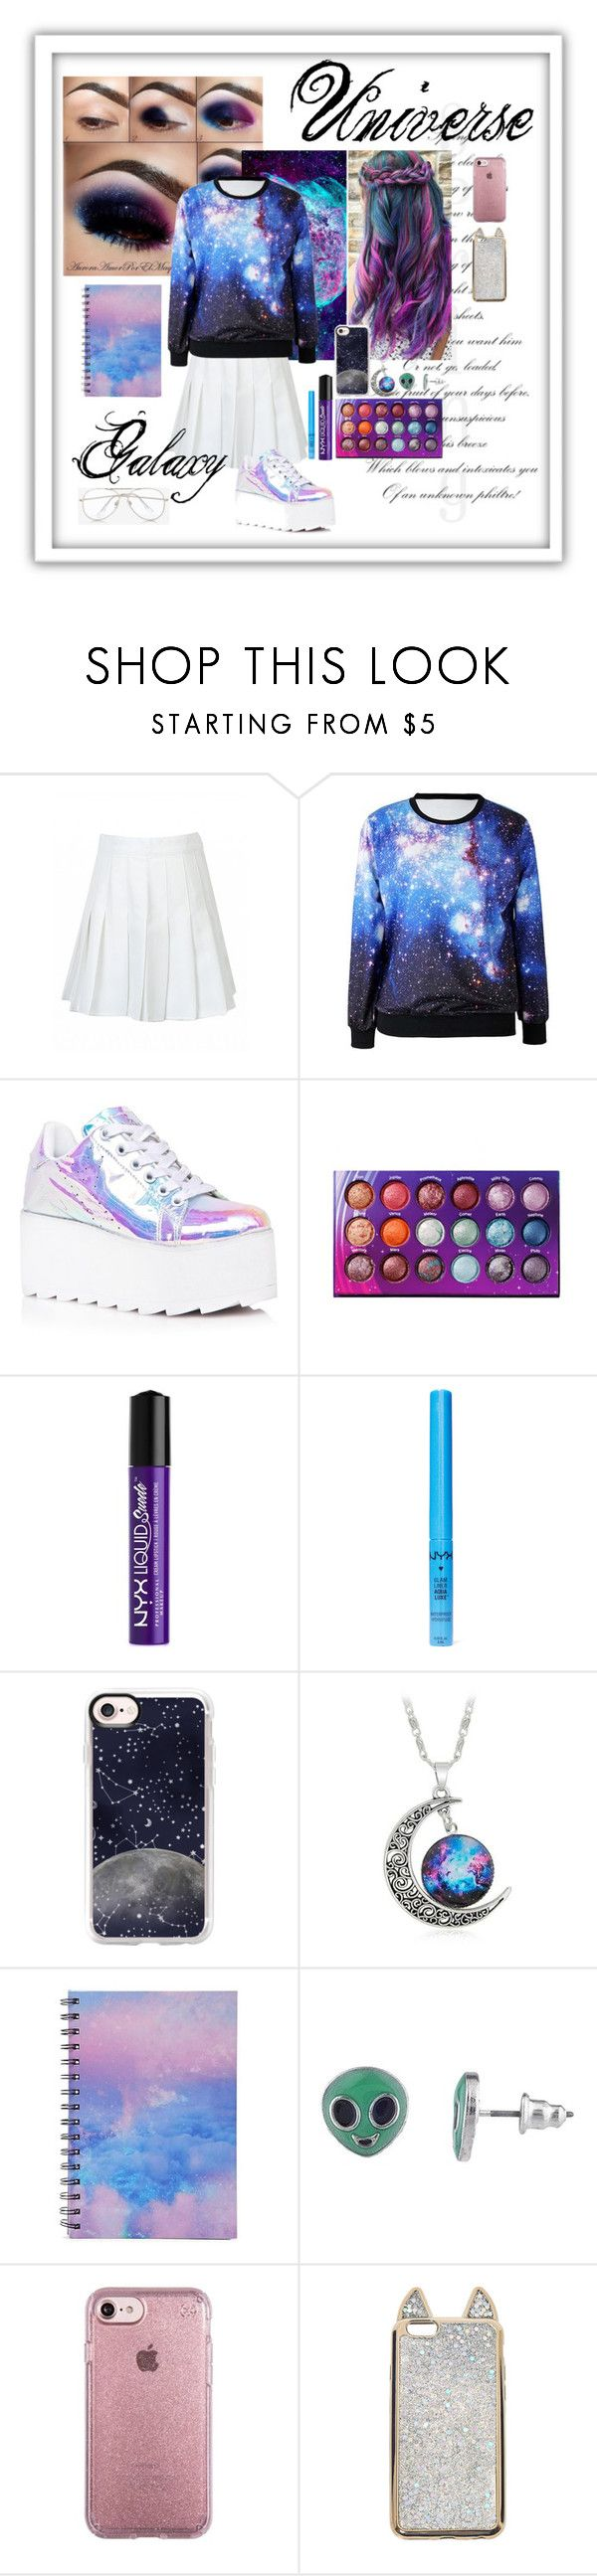 Universe Galaxy by reemily on Polyvore featuring mode, Y.R.U., Speck, Casetify, Express, BHCosmetics, NYX and Forever 21